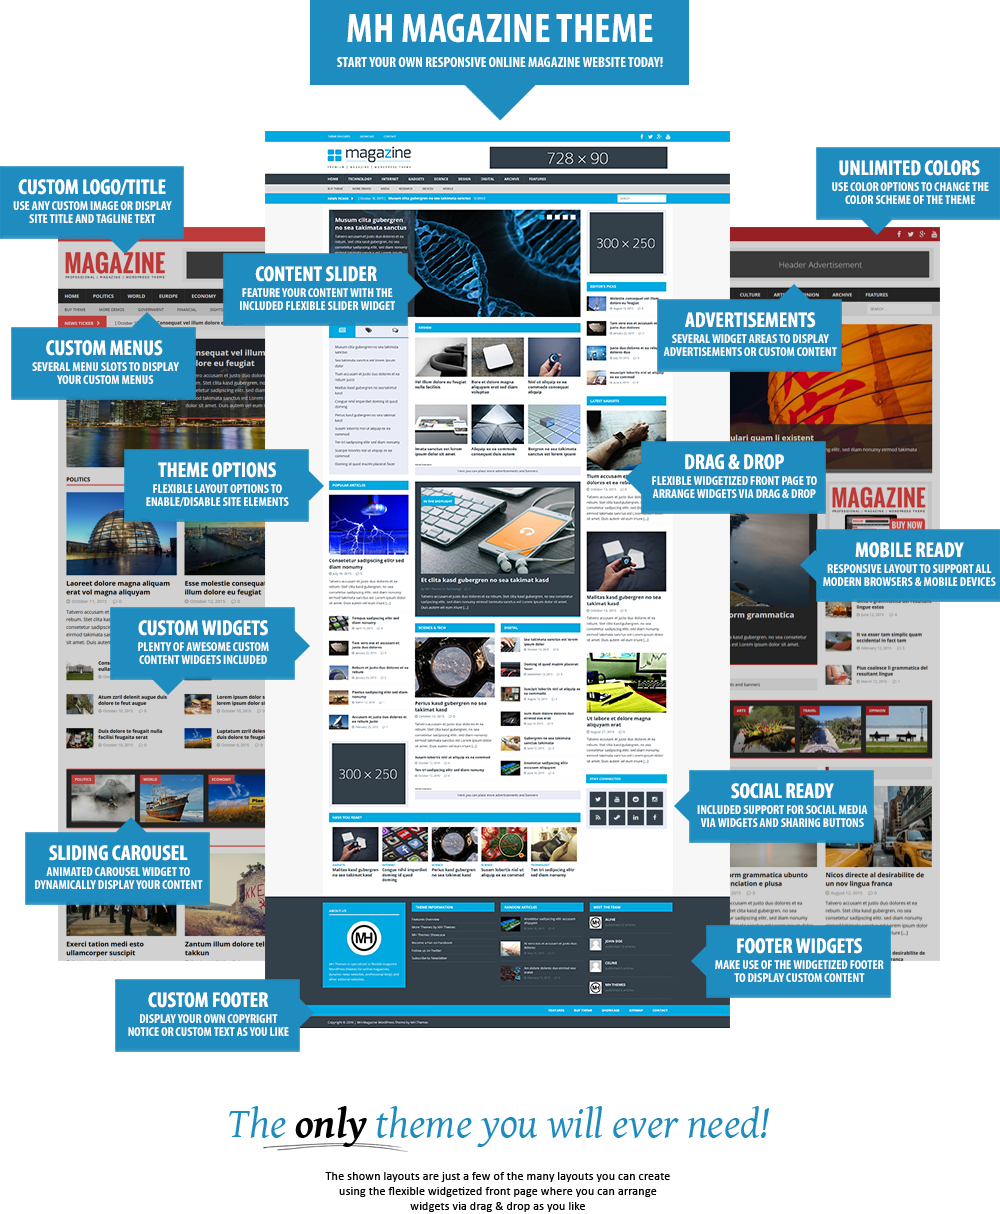 MH Magazine adsense optimized theme